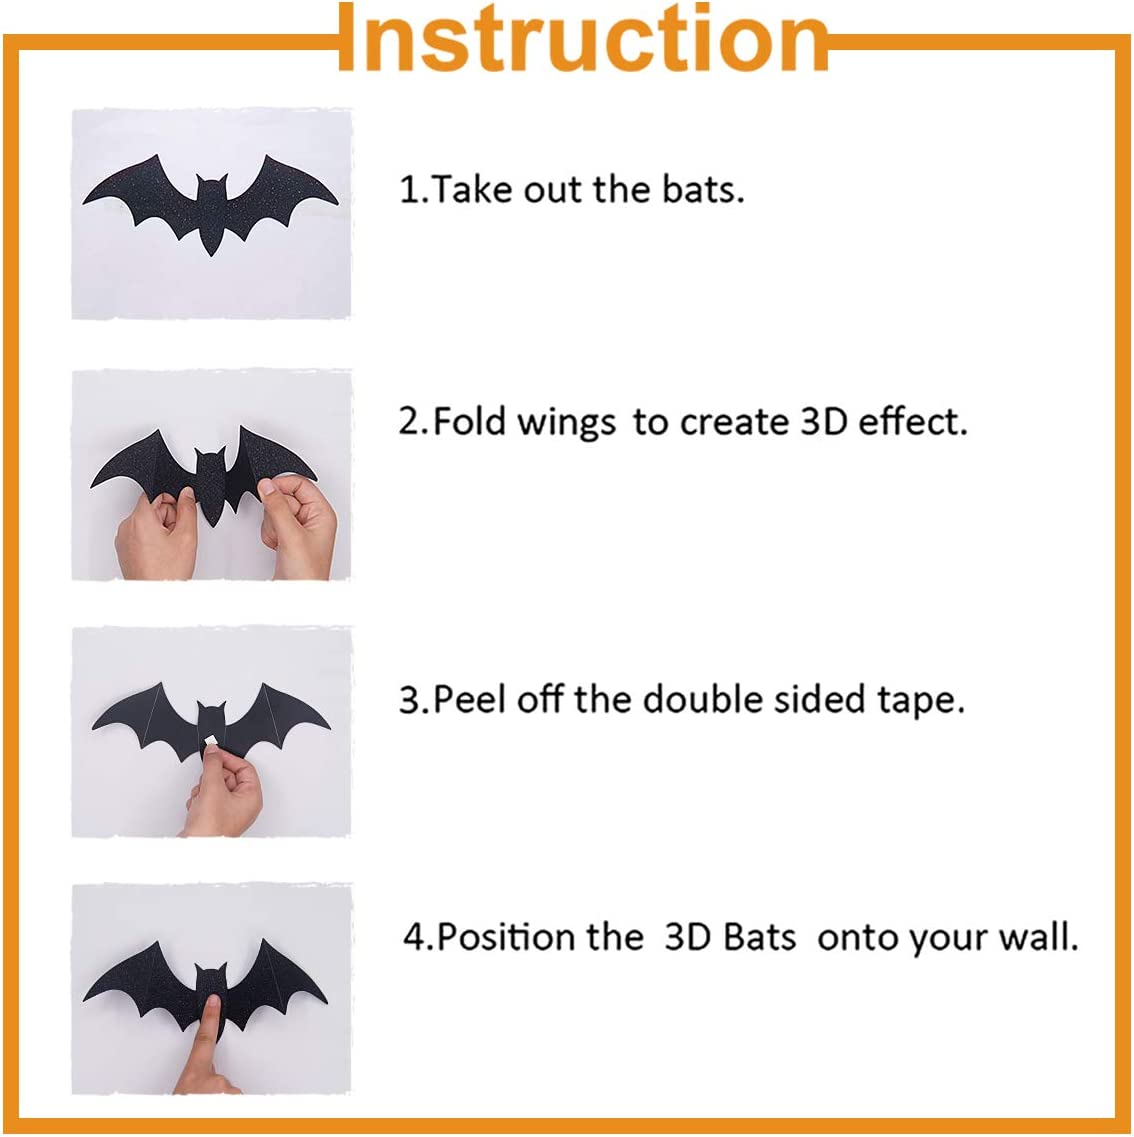 10 Pcs Hanging Bats and Wall Decals Window Stickers Bat Halloween Yard Decorations Outdoor Party Decor Pawliss Halloween Decorations